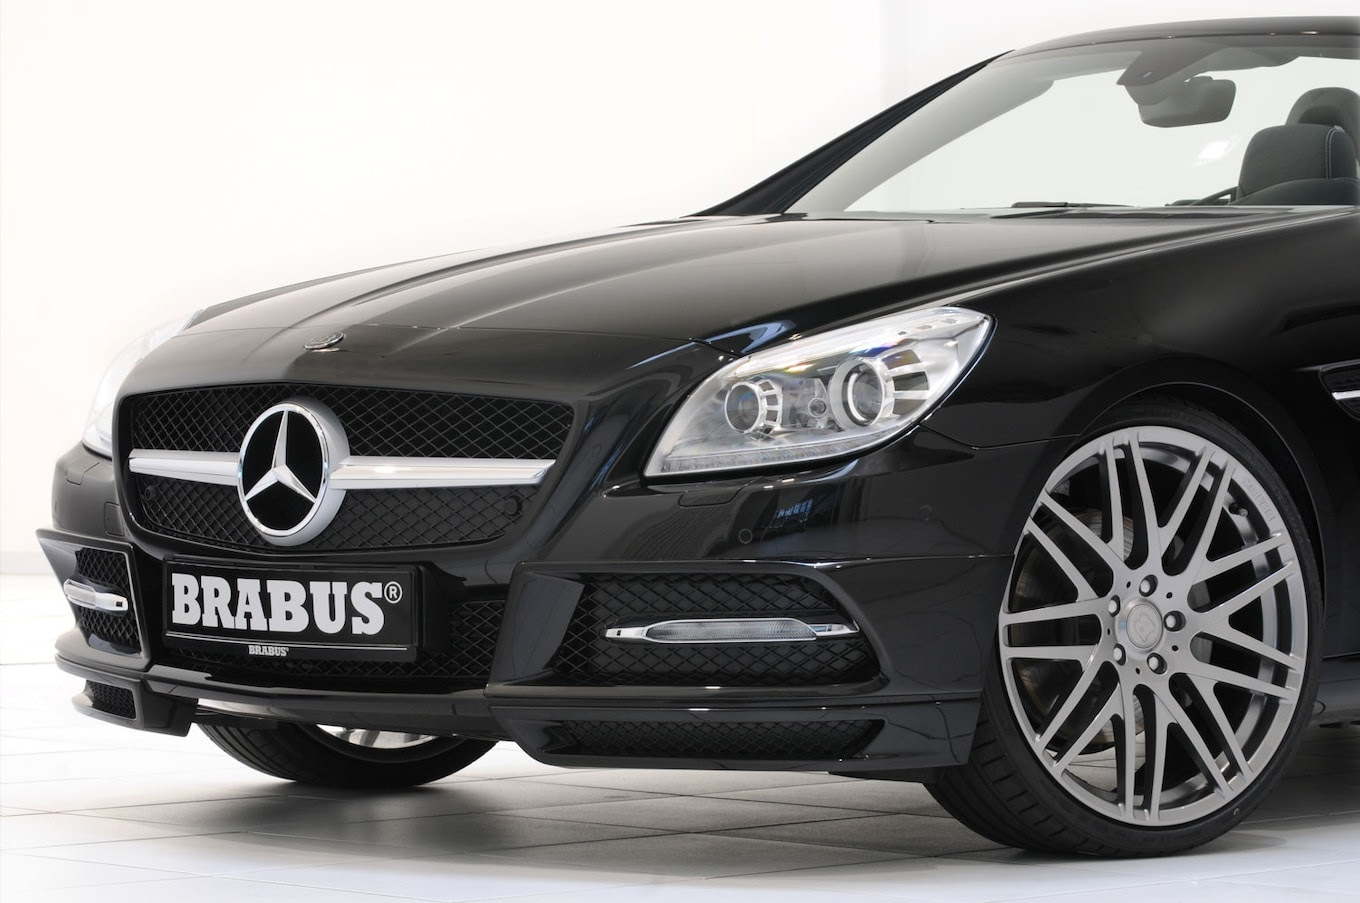 Brabus Releases Performance Parts for New MercedesBenz SLK